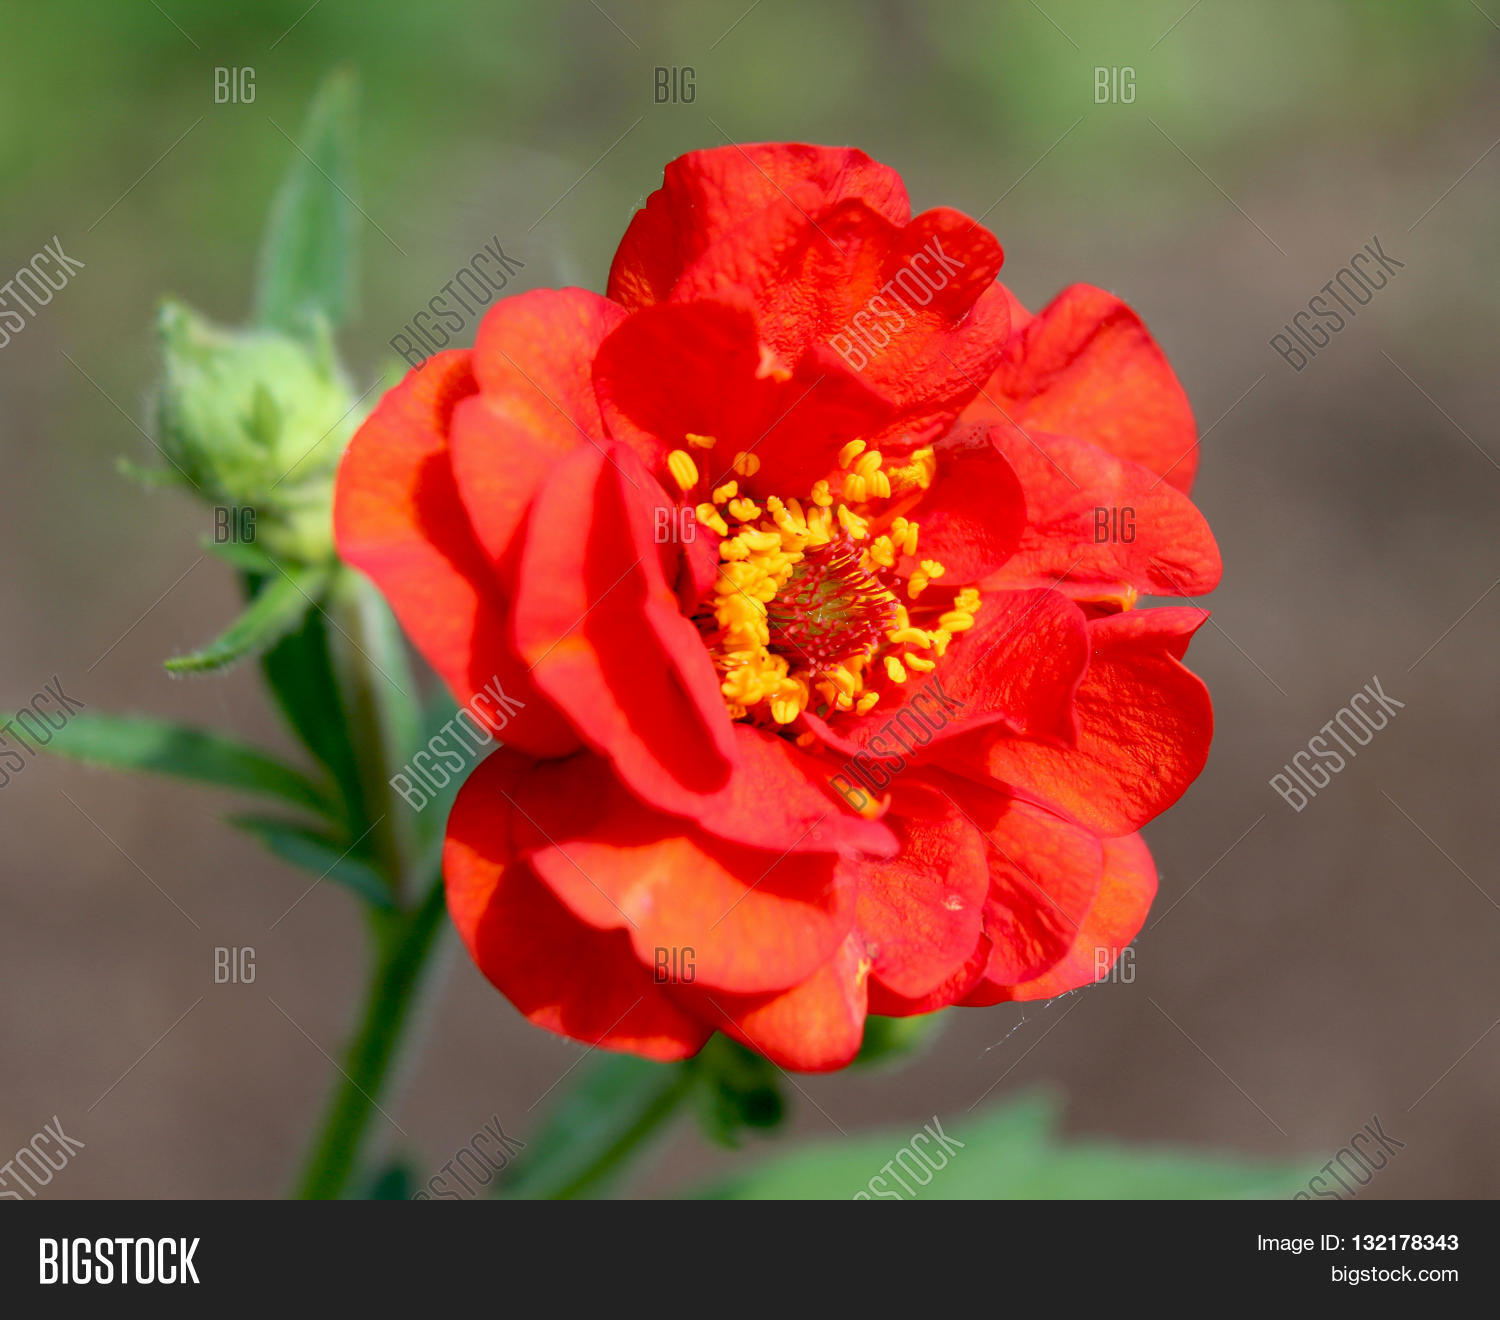 Bright red double image photo free trial bigstock the bright red double flower of geum chiloense mrs j bradshaw a perennial mightylinksfo